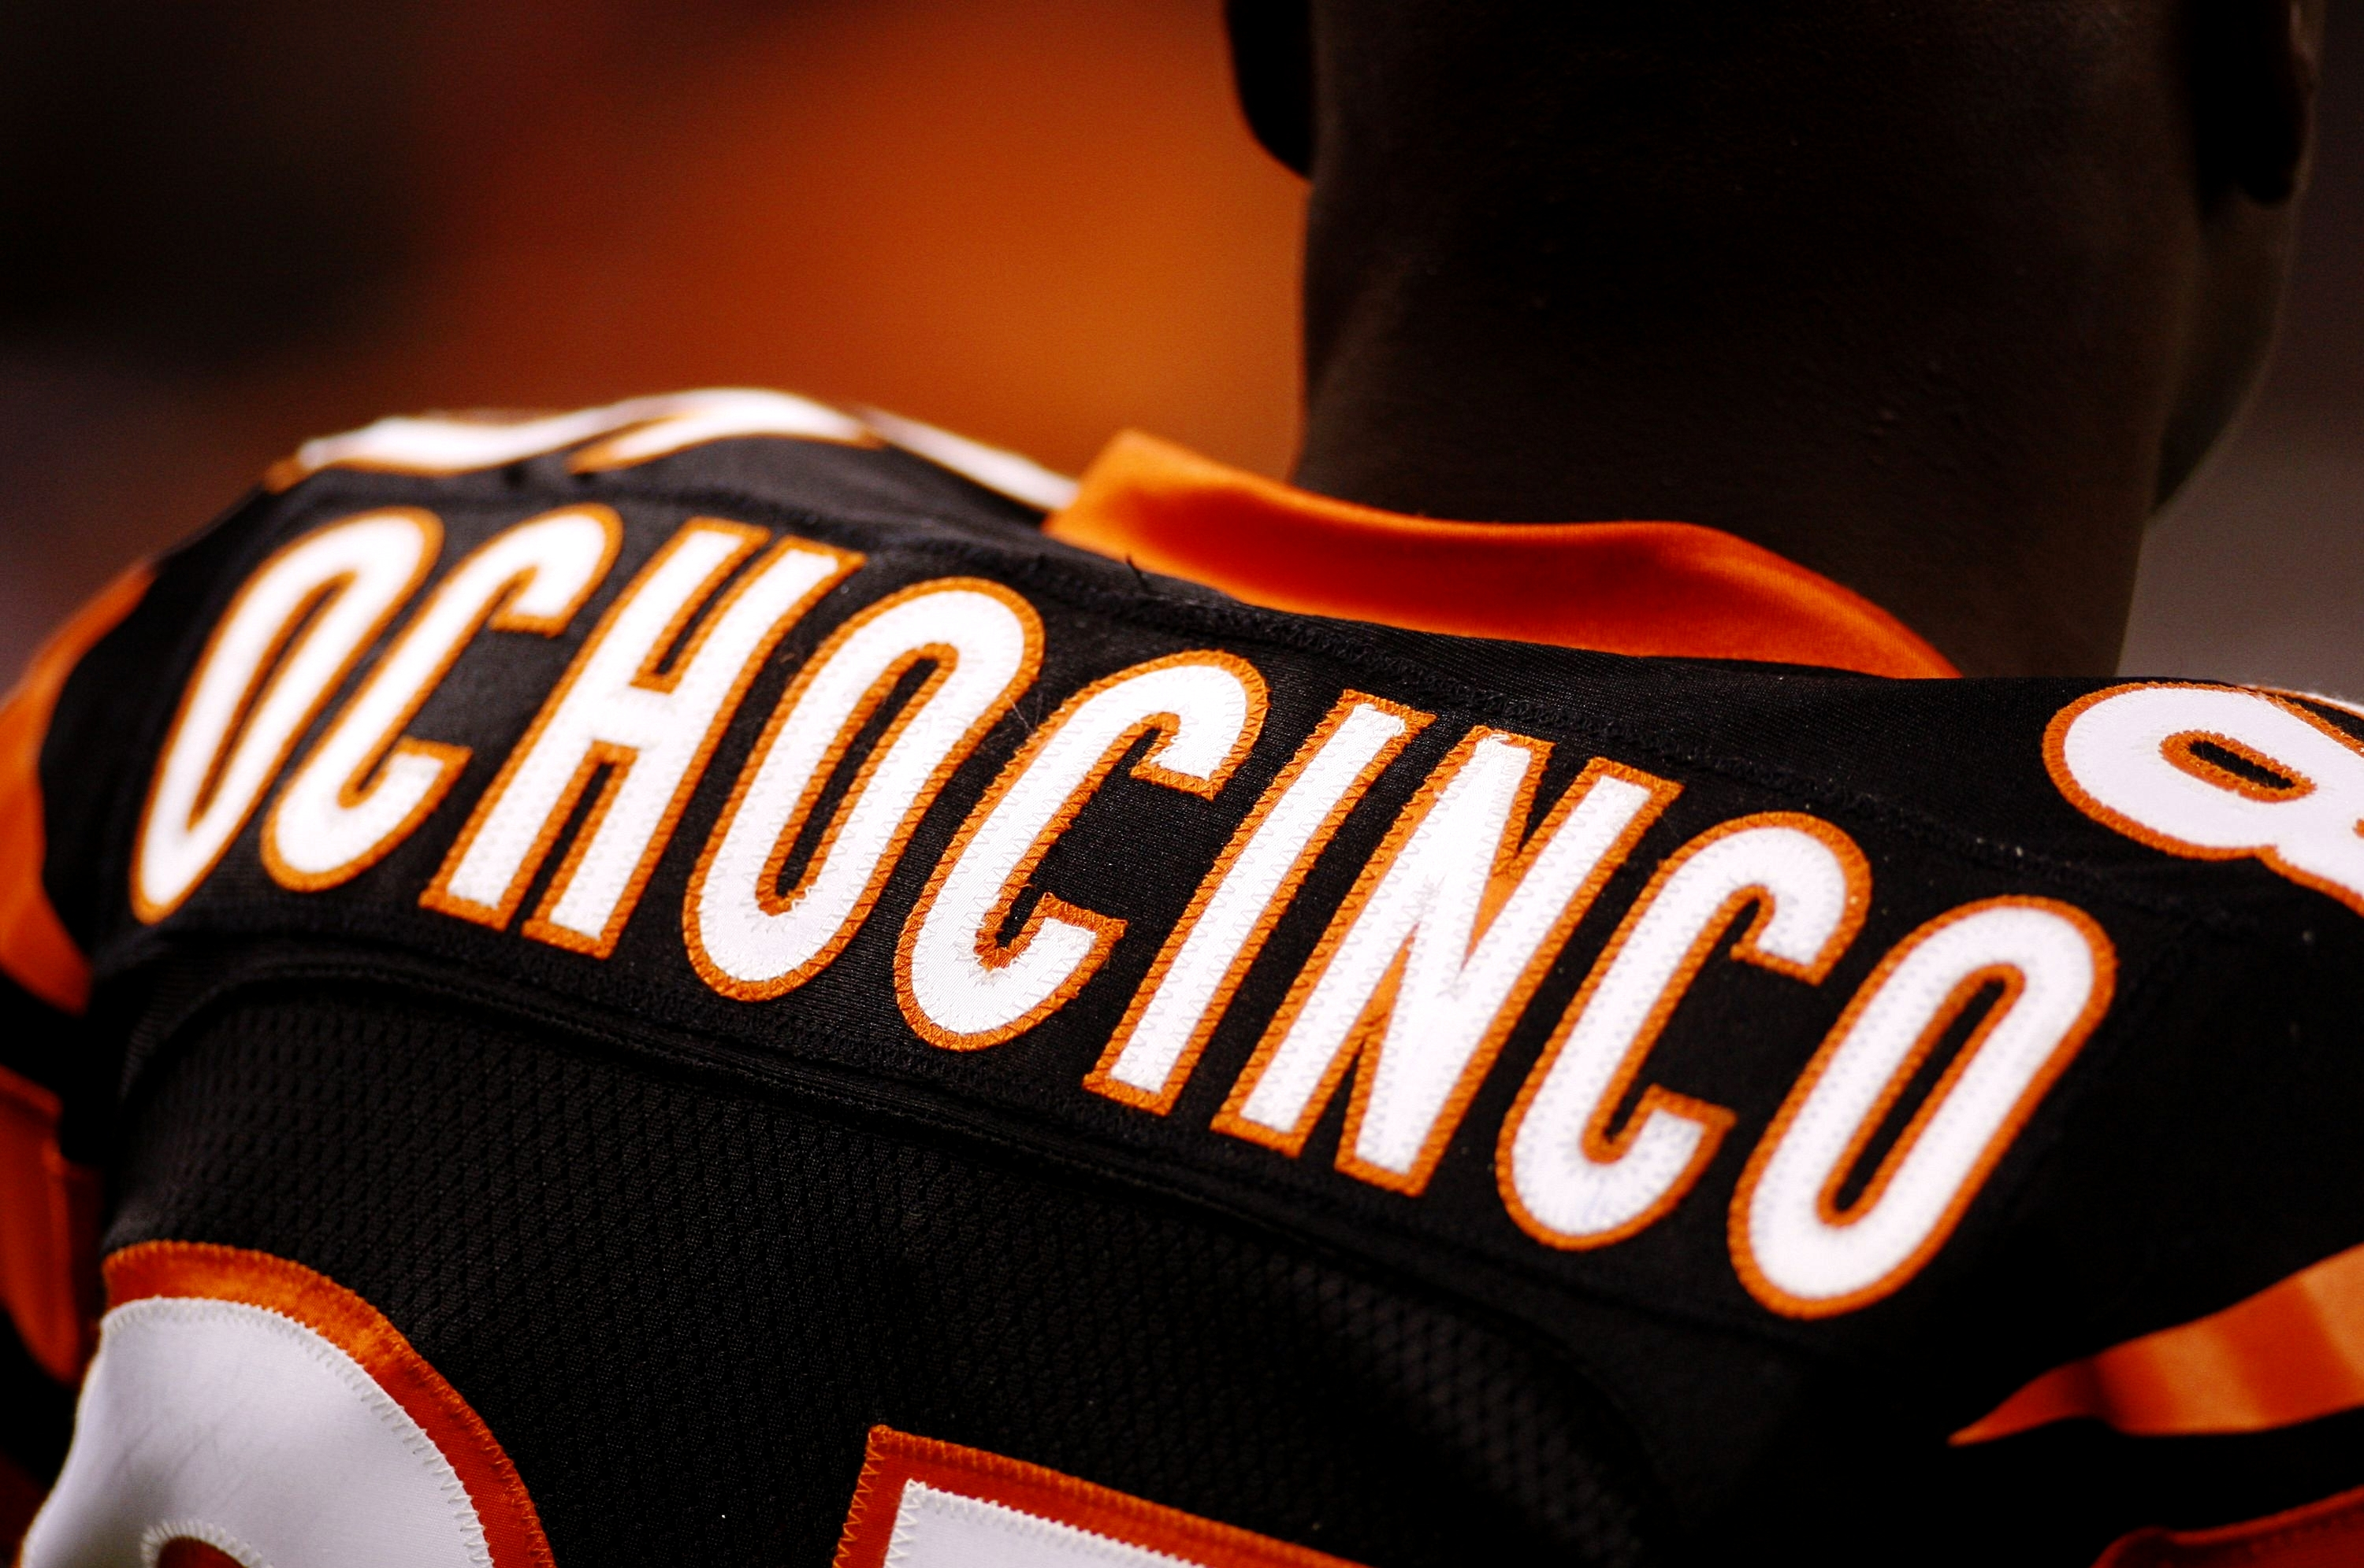 NEW ORLEANS - AUGUST 14:  Wide receiver Chad Ochocinco #85 of the Cincinnati Bengals is shown during a preseason game against the New Orleans Saints on August 14, 2009 at the Superdome in New Orleans, Louisiana. (Photo by Chris Graythen/Getty Images)